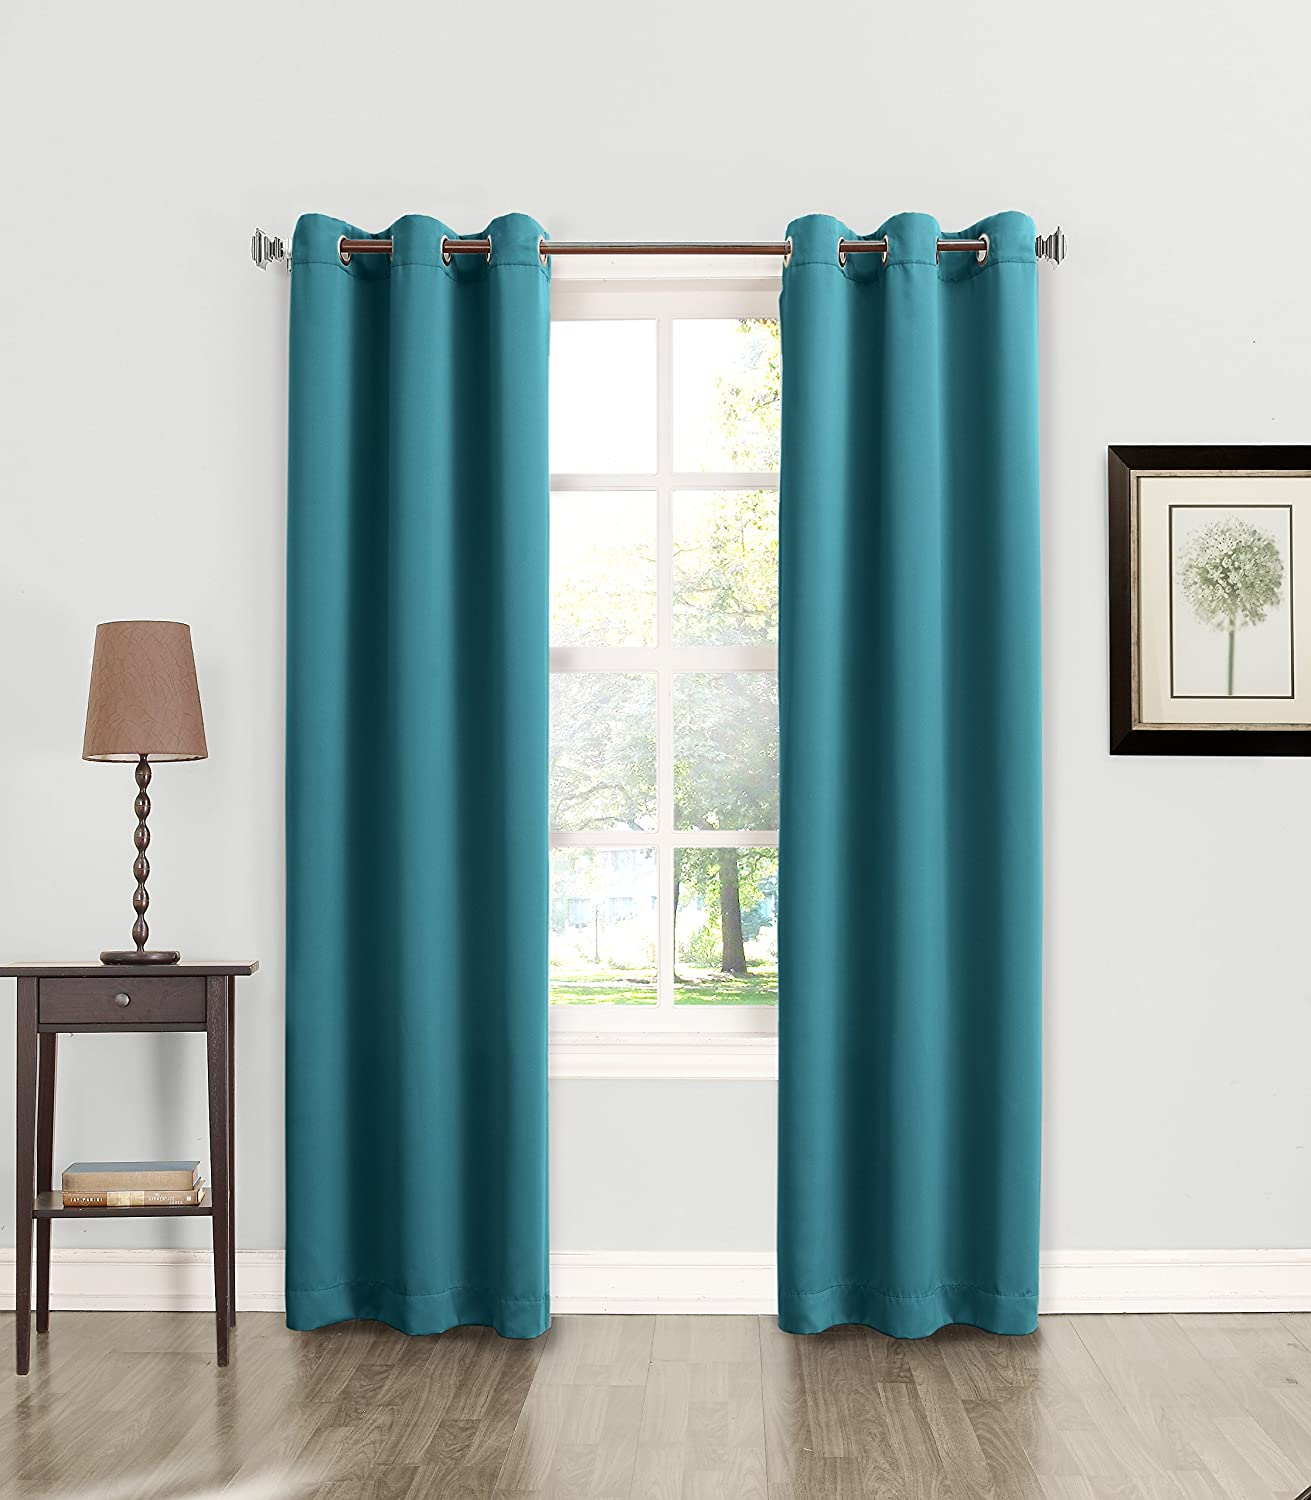 Teal curtain panels - Amazon Com Sun Zero Becca Energy Efficient Grommet Curtain Panel 40 X 84 Marine Teal Home Kitchen